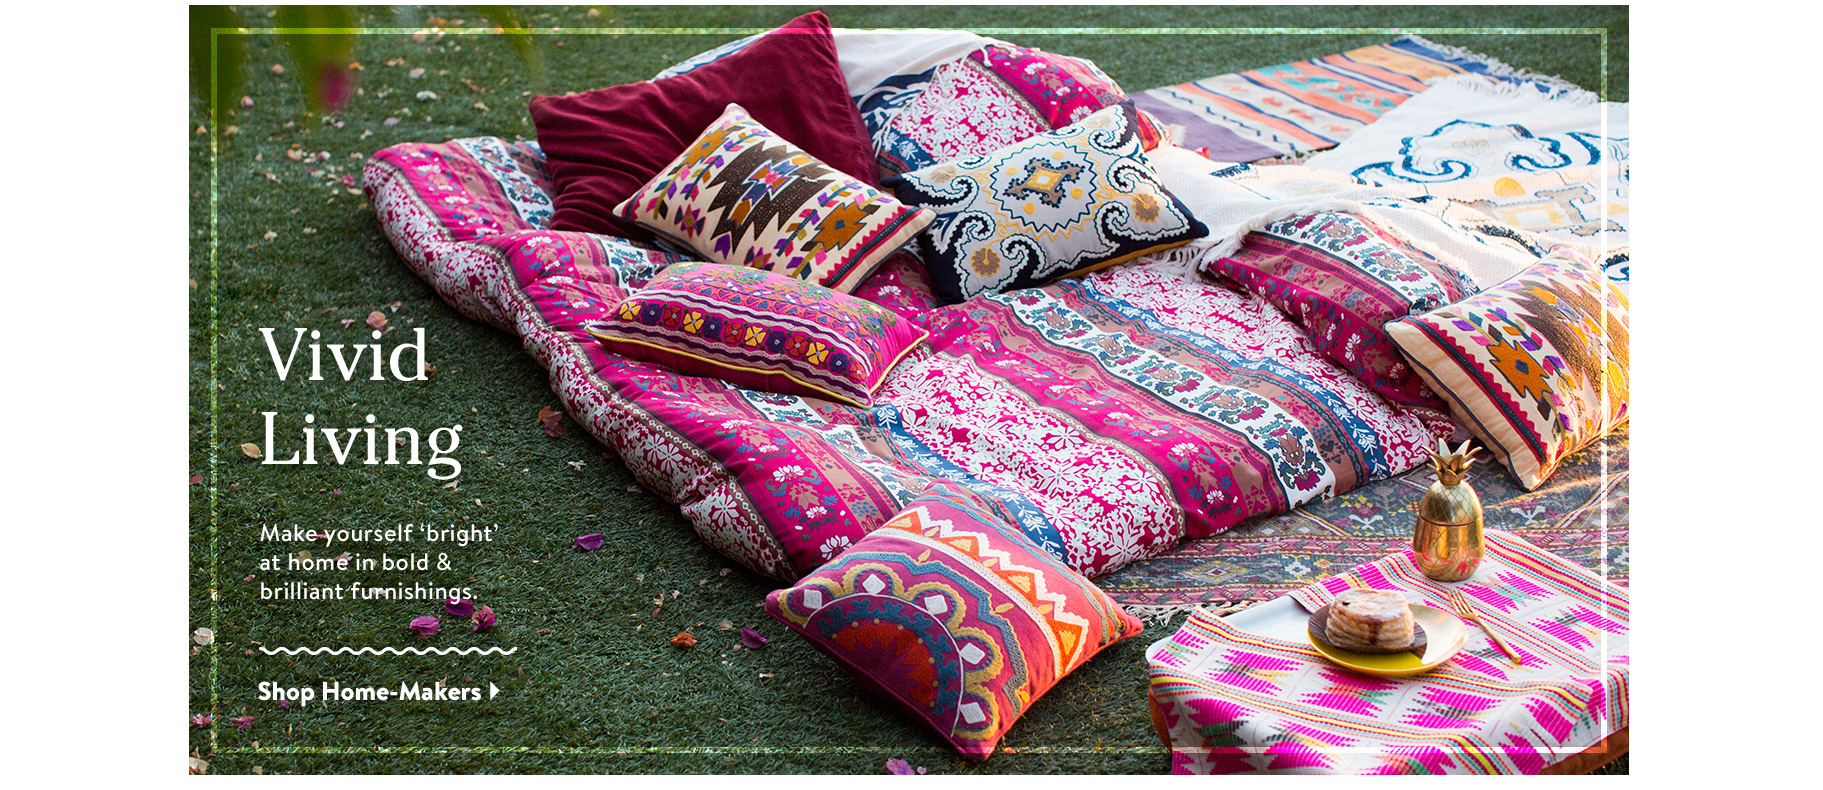 Vivid Living. Make yourself 'bright' at home in bold & brilliant furnishings. Shop Home-Makers.